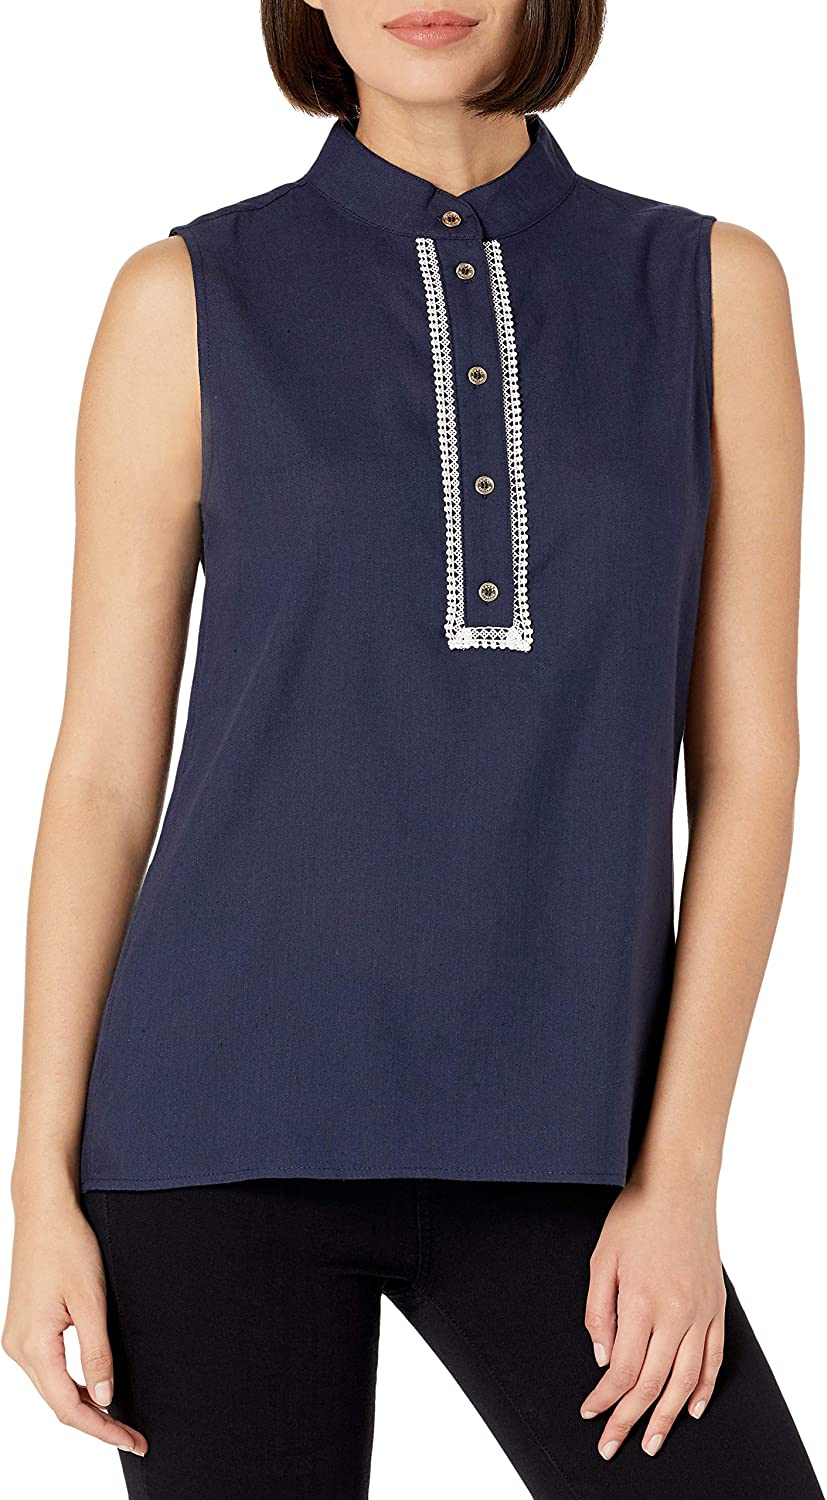 Tommy Hilfiger Women's Award-winning 2021new shipping free shipping store Classic Collared Sleeveless- Button Front